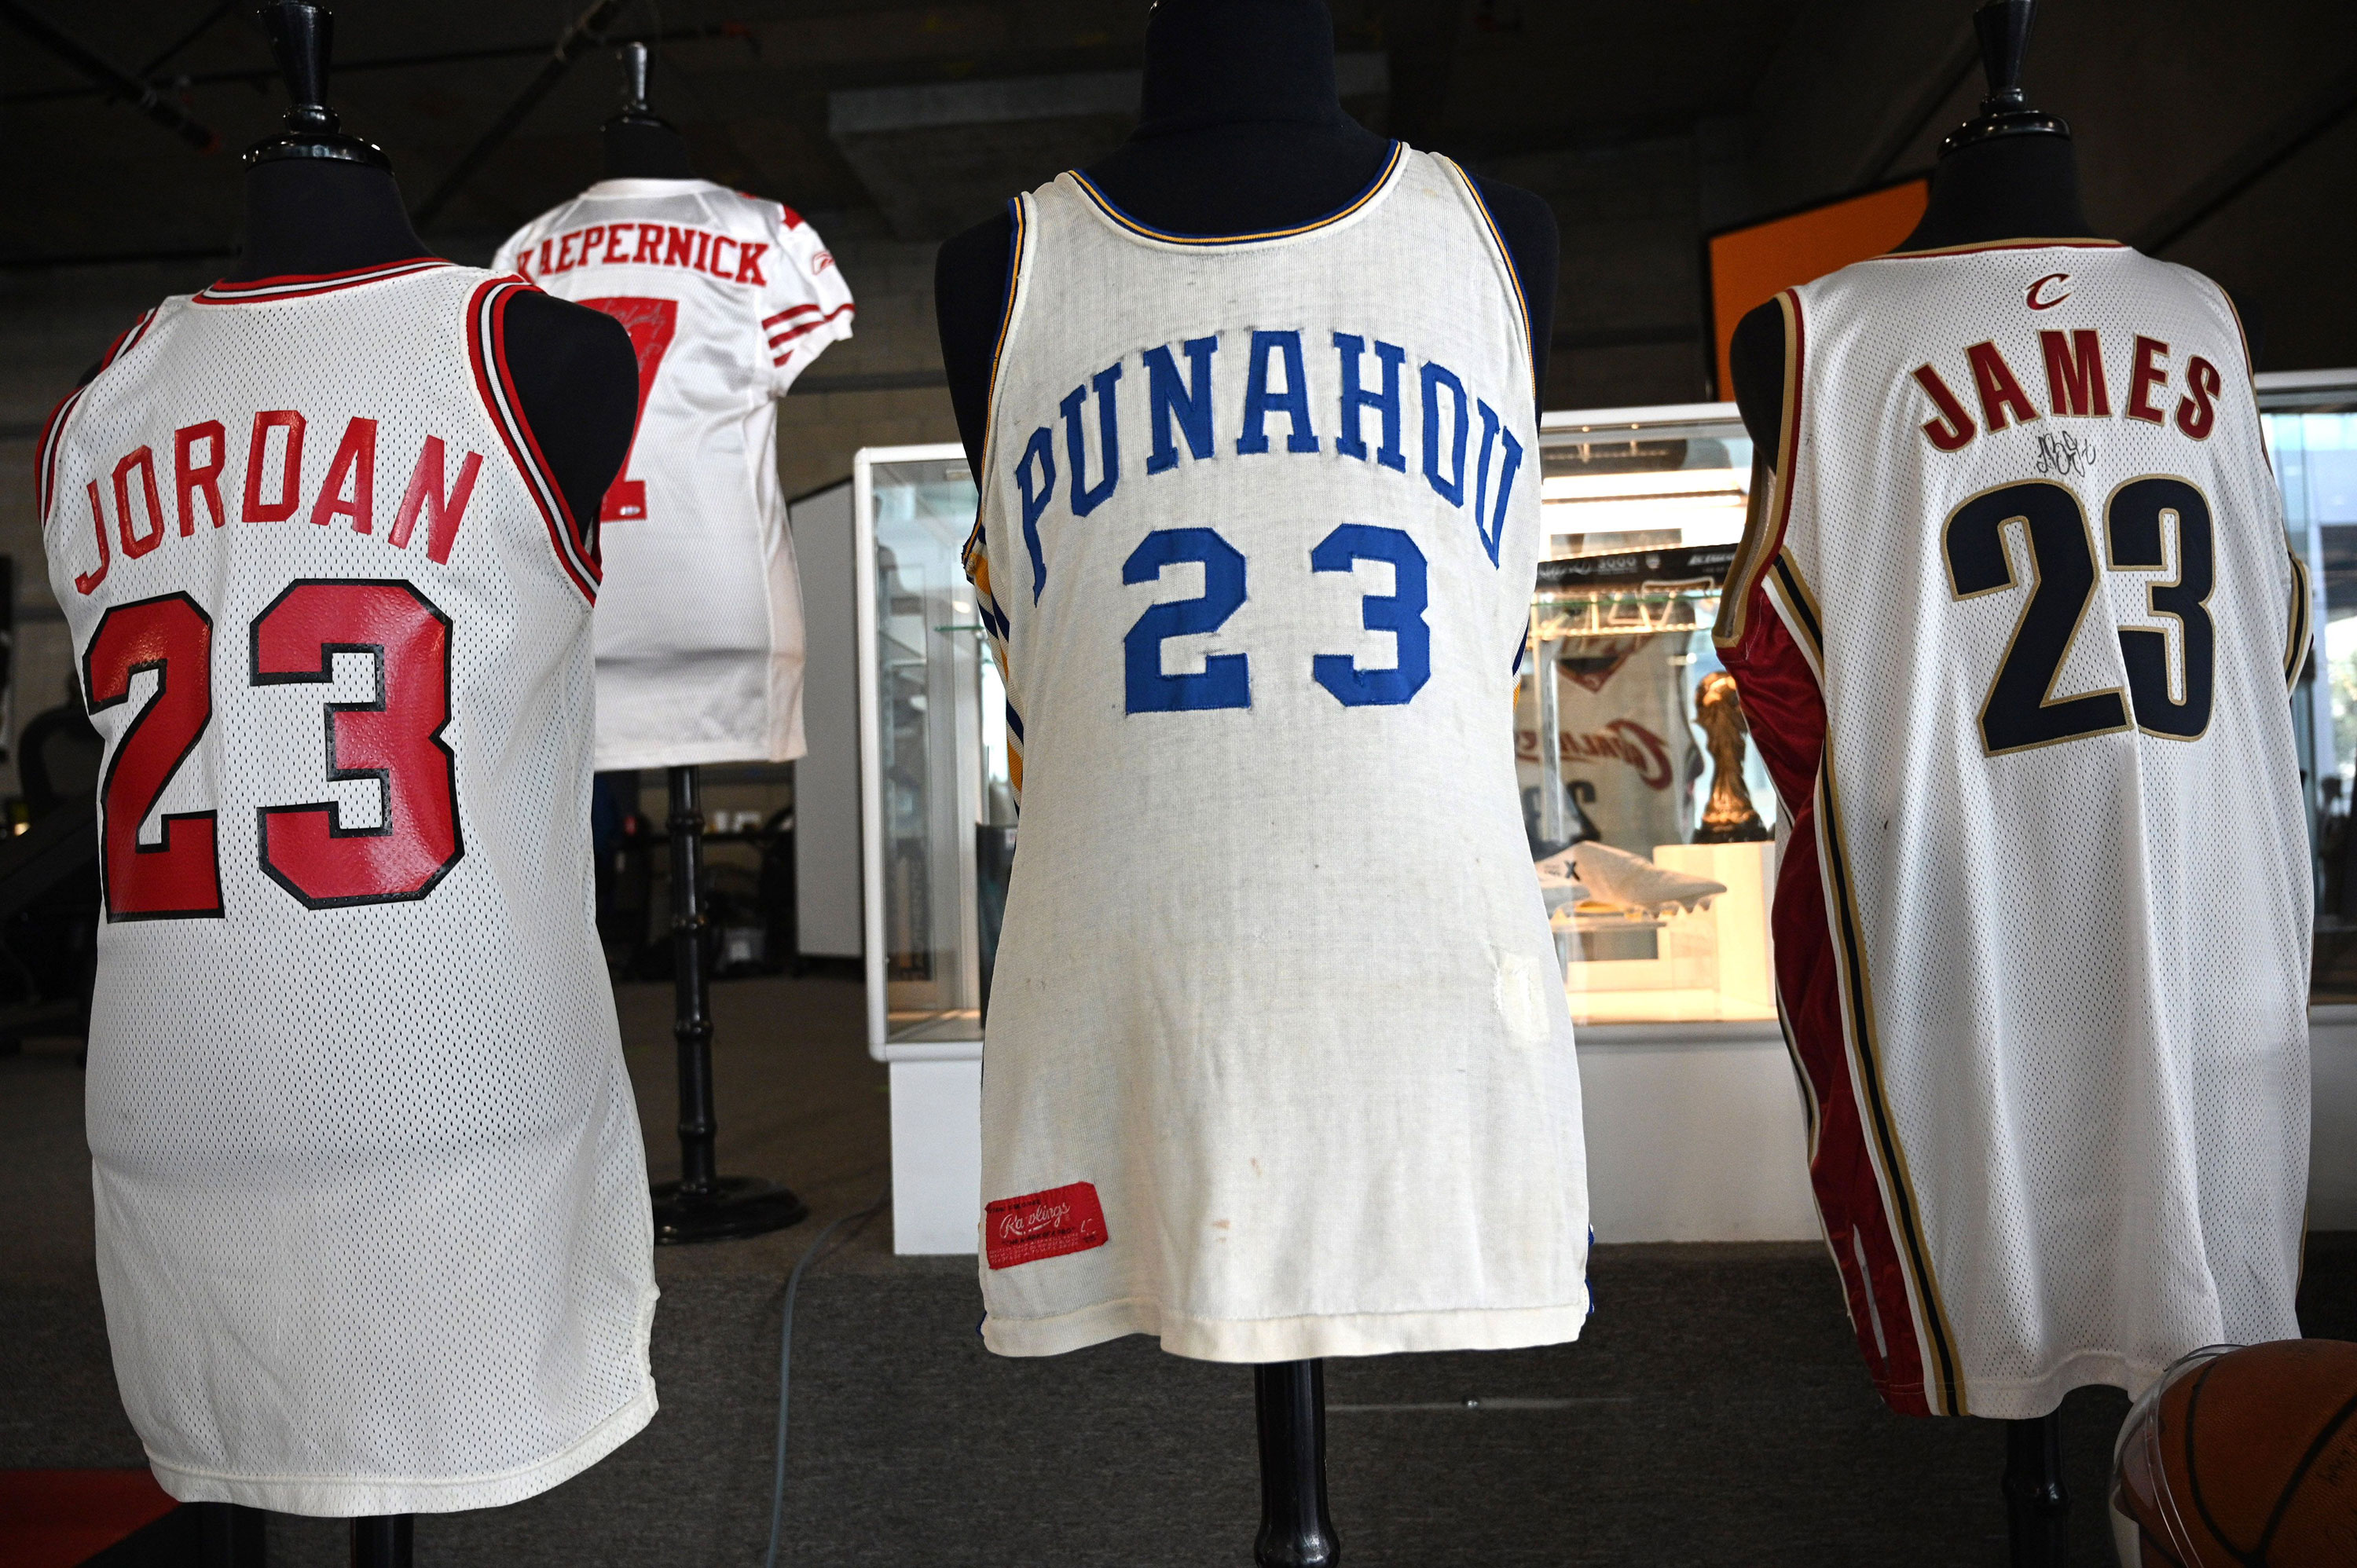 Jerseys bearing the last names of Jordan, Kaepernick and Obama break records in online auction